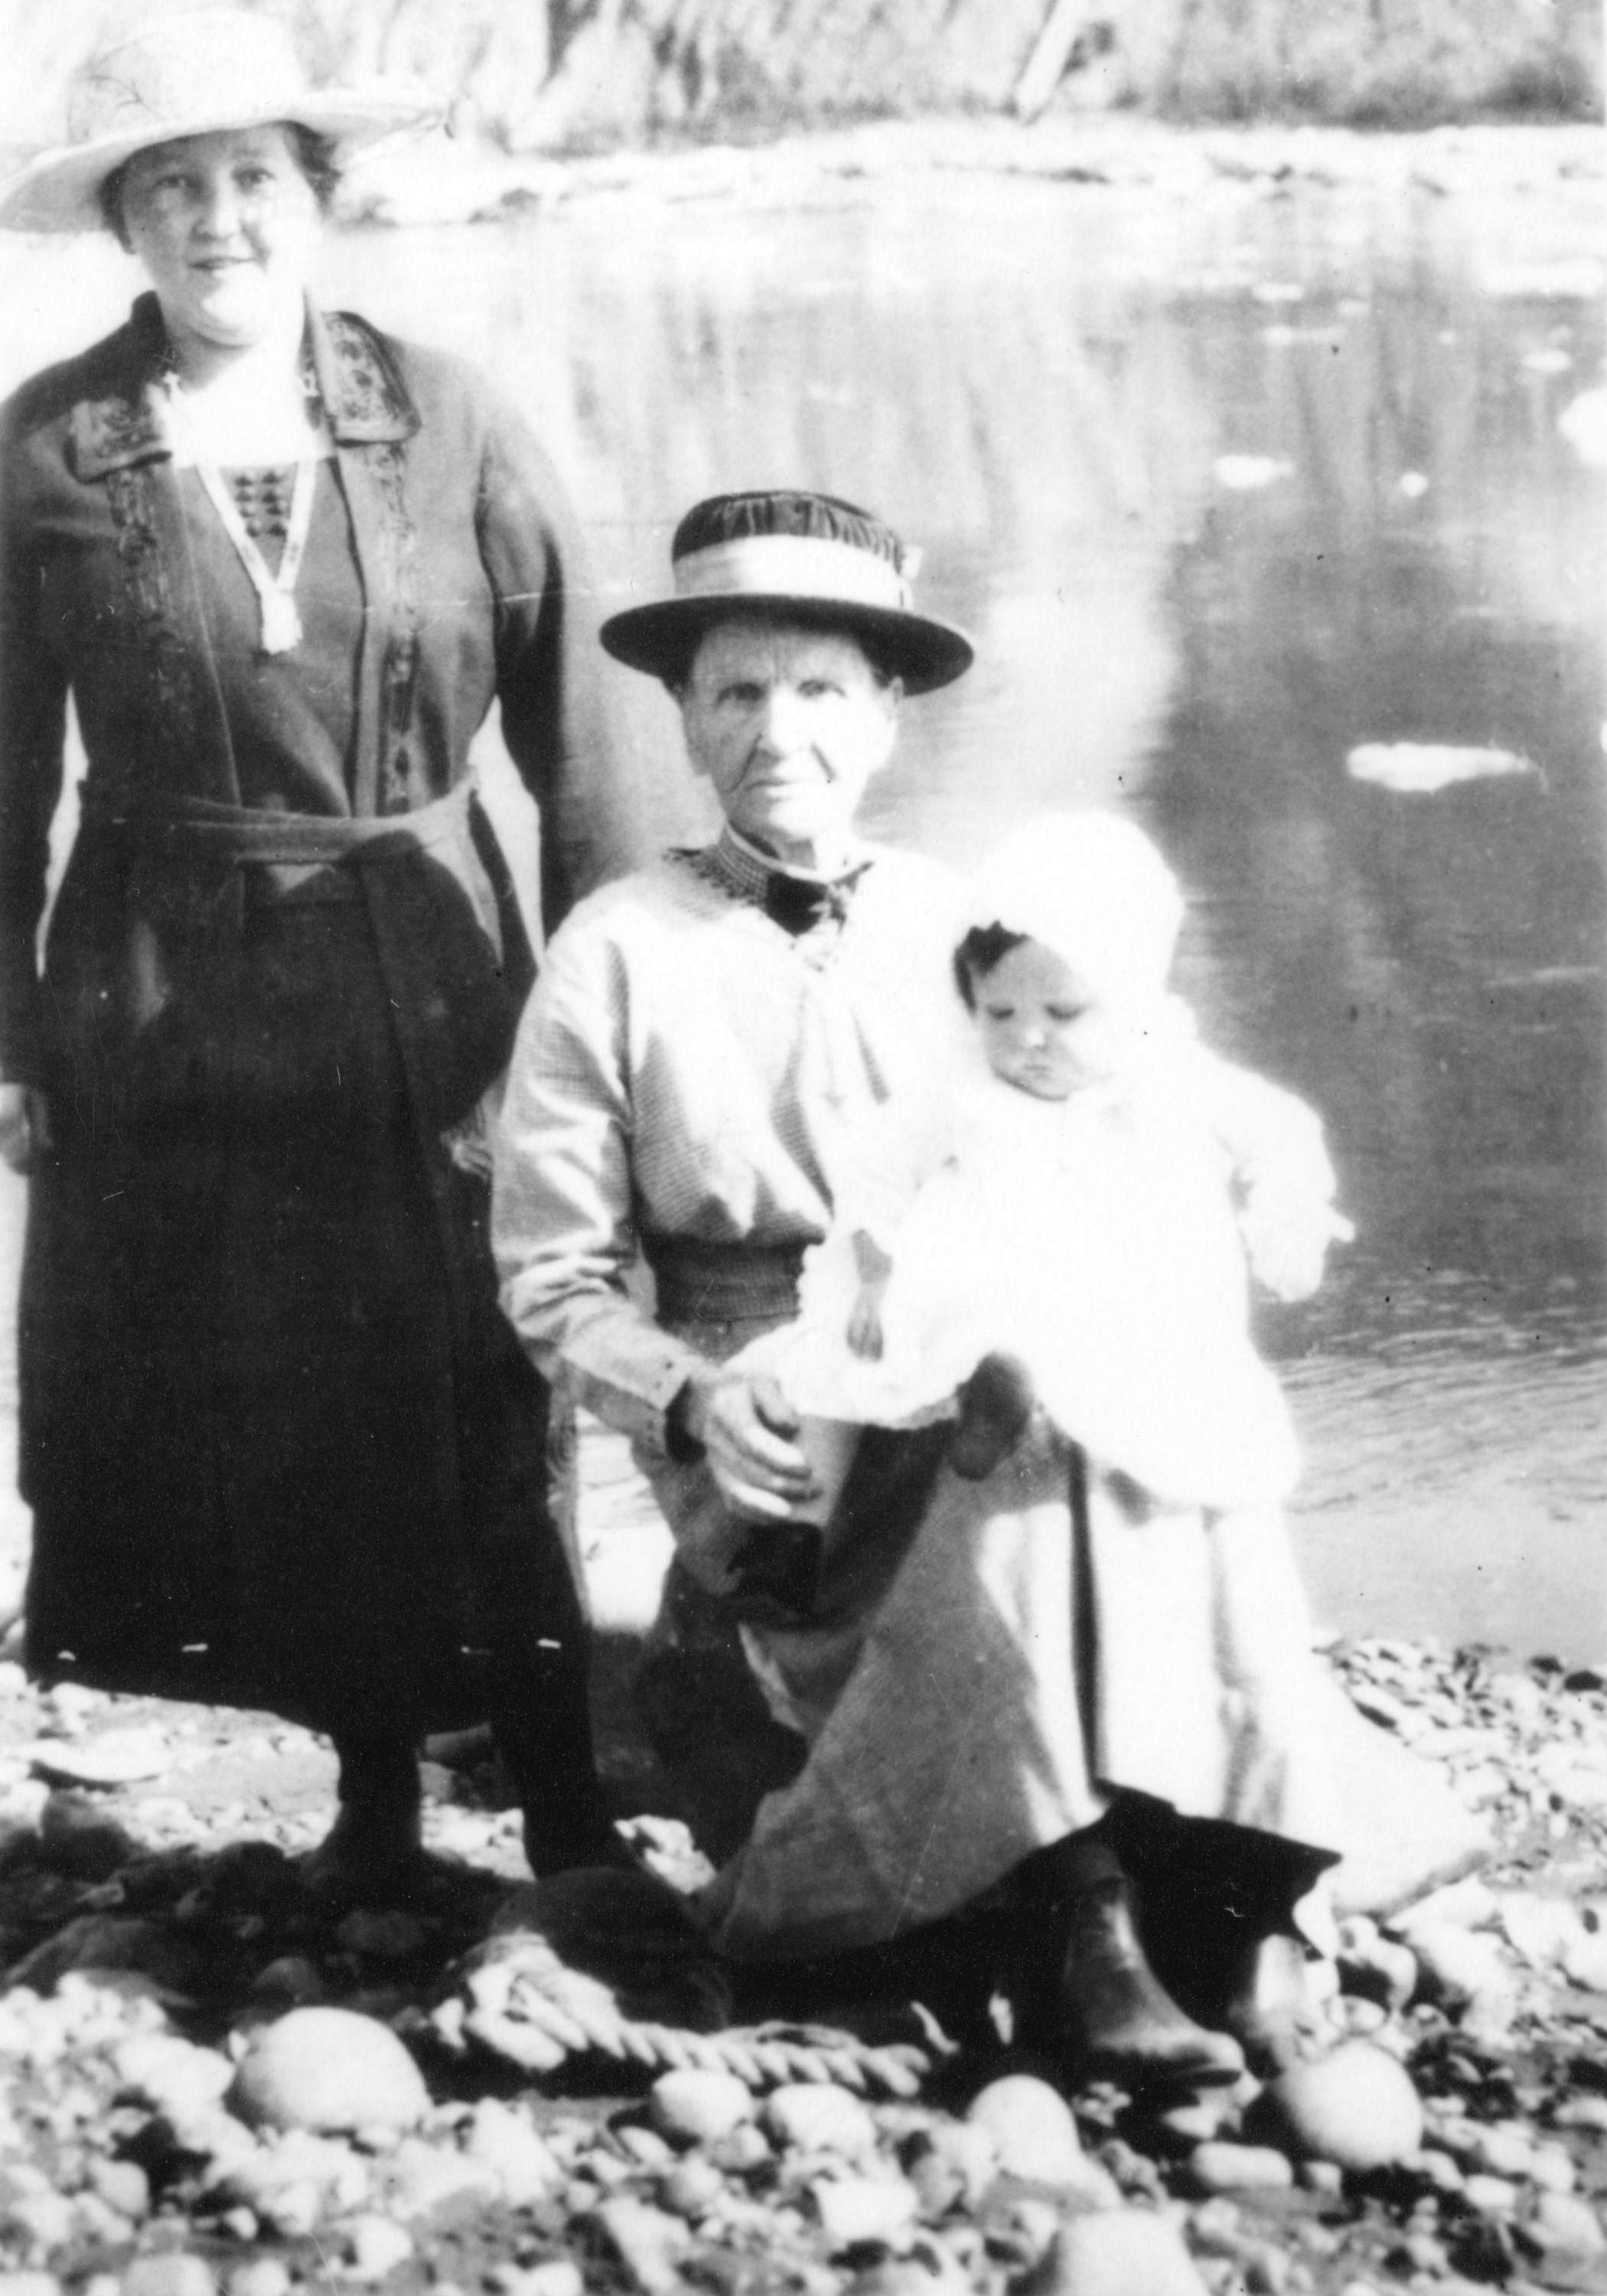 Seated is Kate Avison, [Mrs. Henry Avison, first park Ranger]. She started the first zoo in Stanley Park, ca 1921. Photo: Vancouver Archives Port P200.2